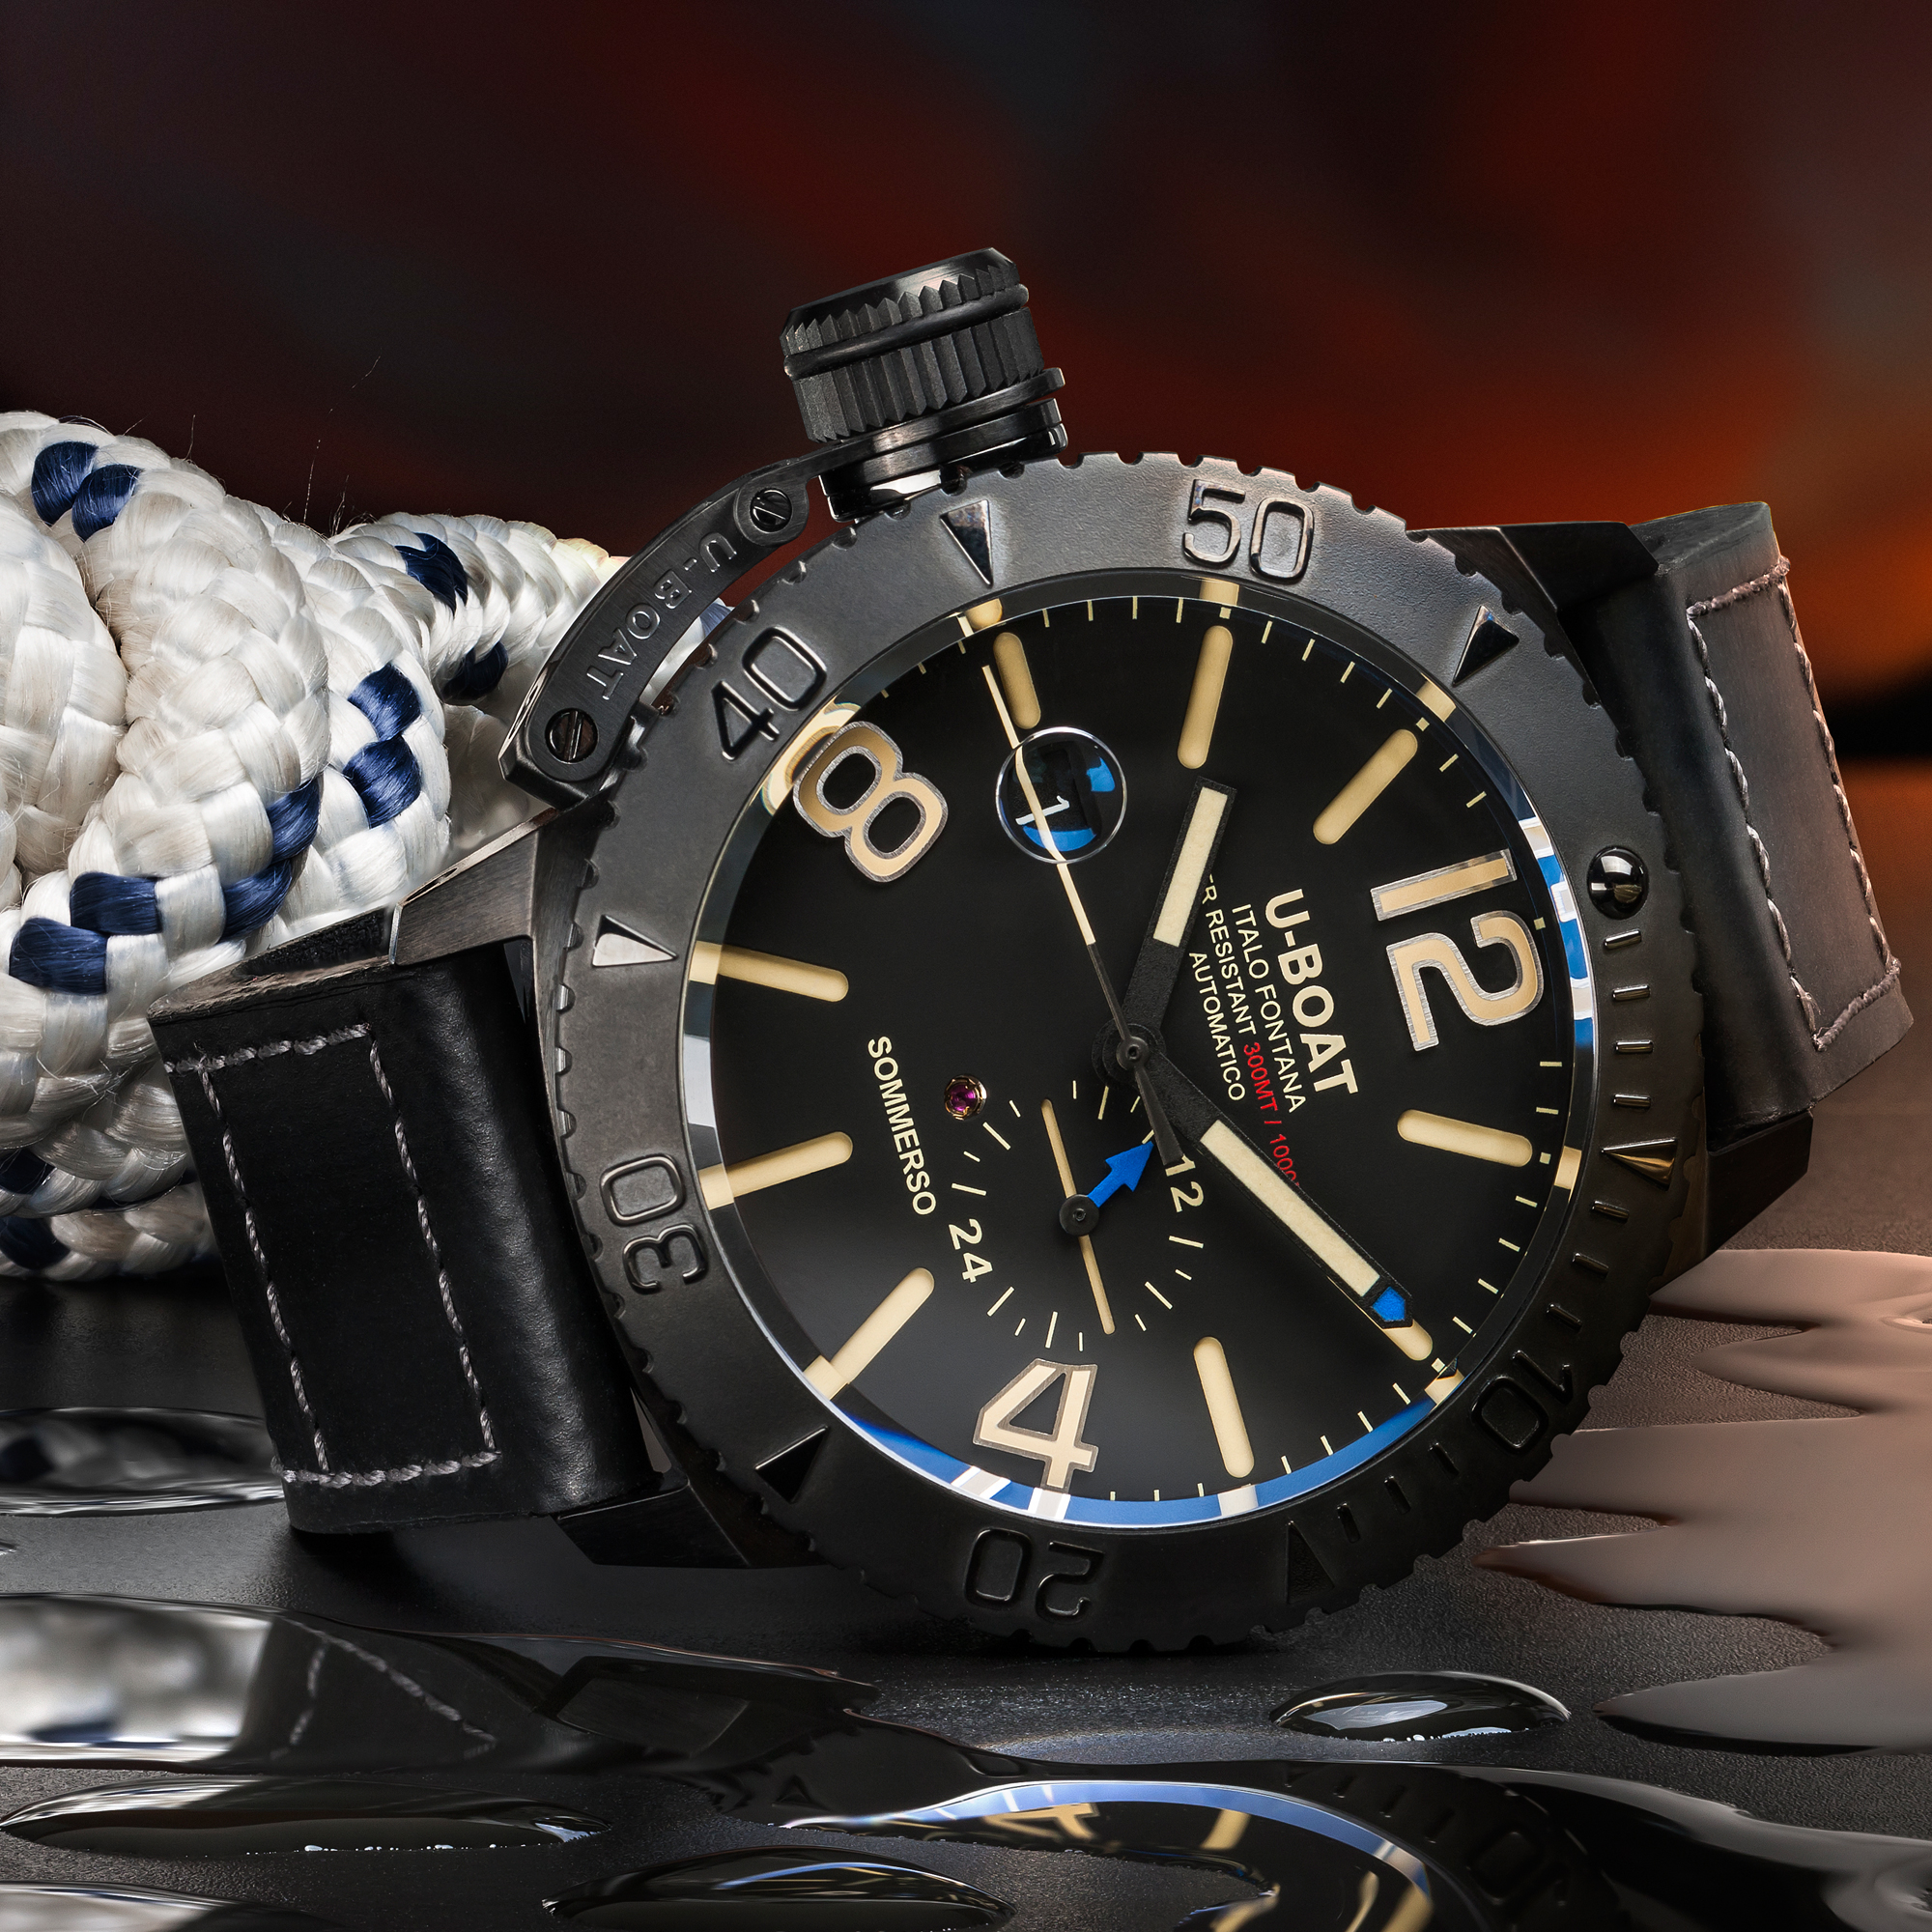 u boat sommerso  U-BOAT SOMMERSO DLC - 9015 - Swiss Luxury Watches